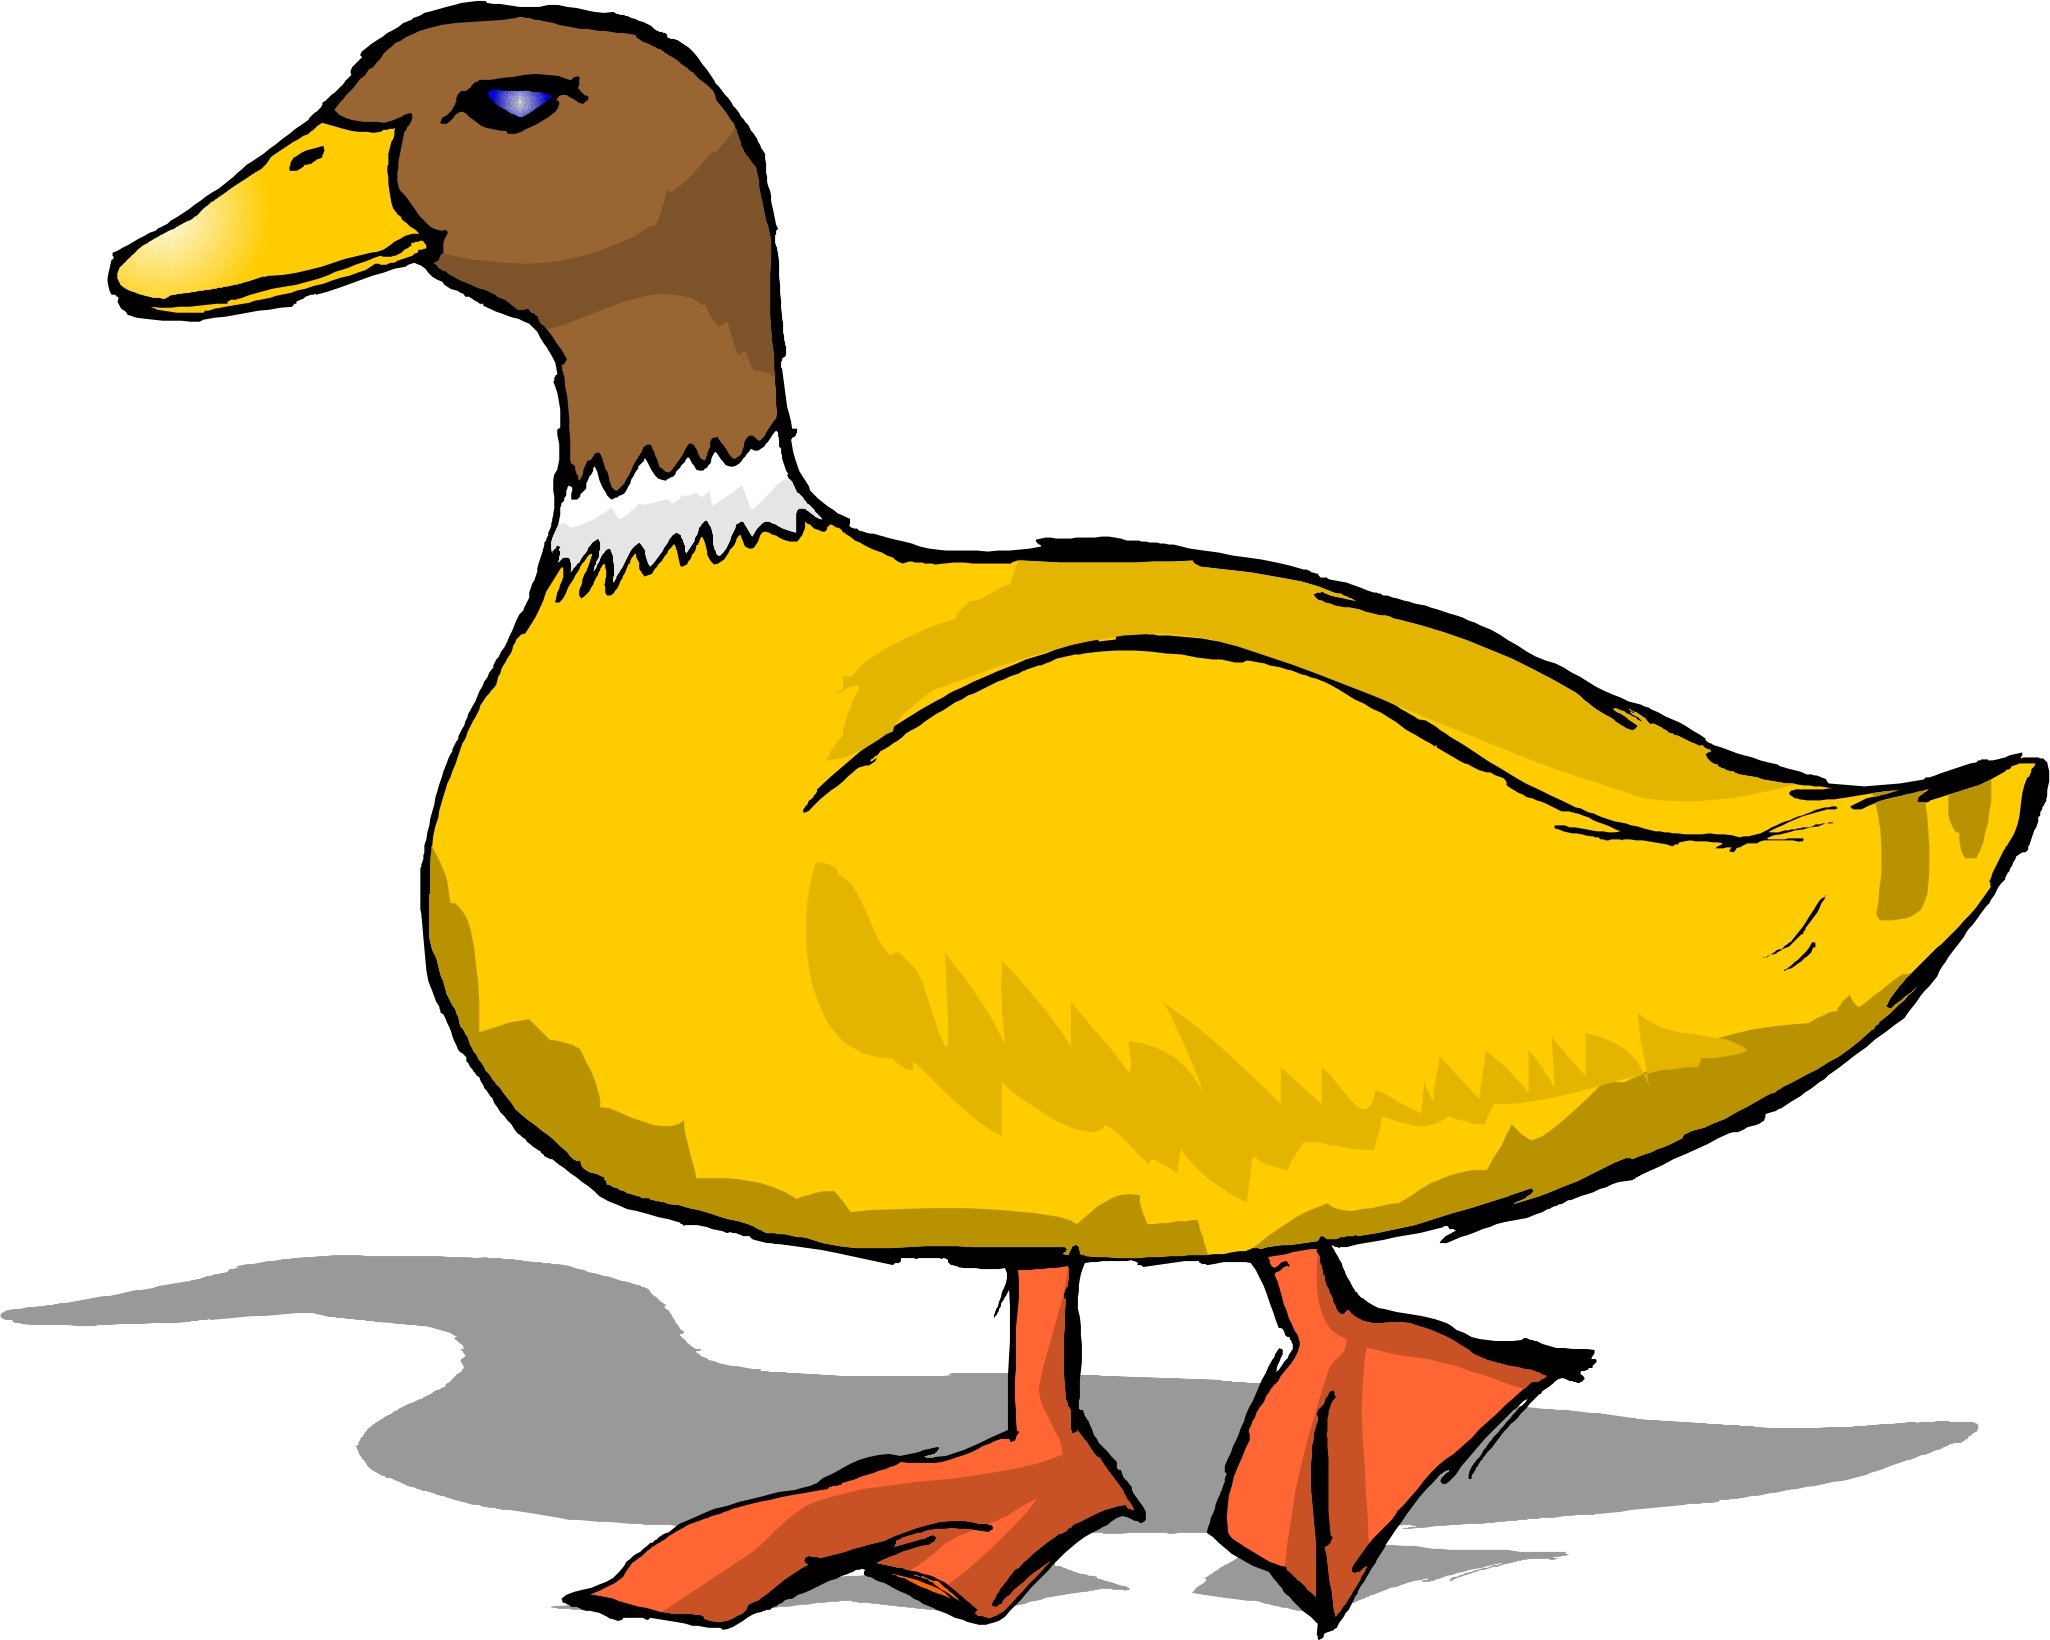 Duck clipart #2, Download drawings